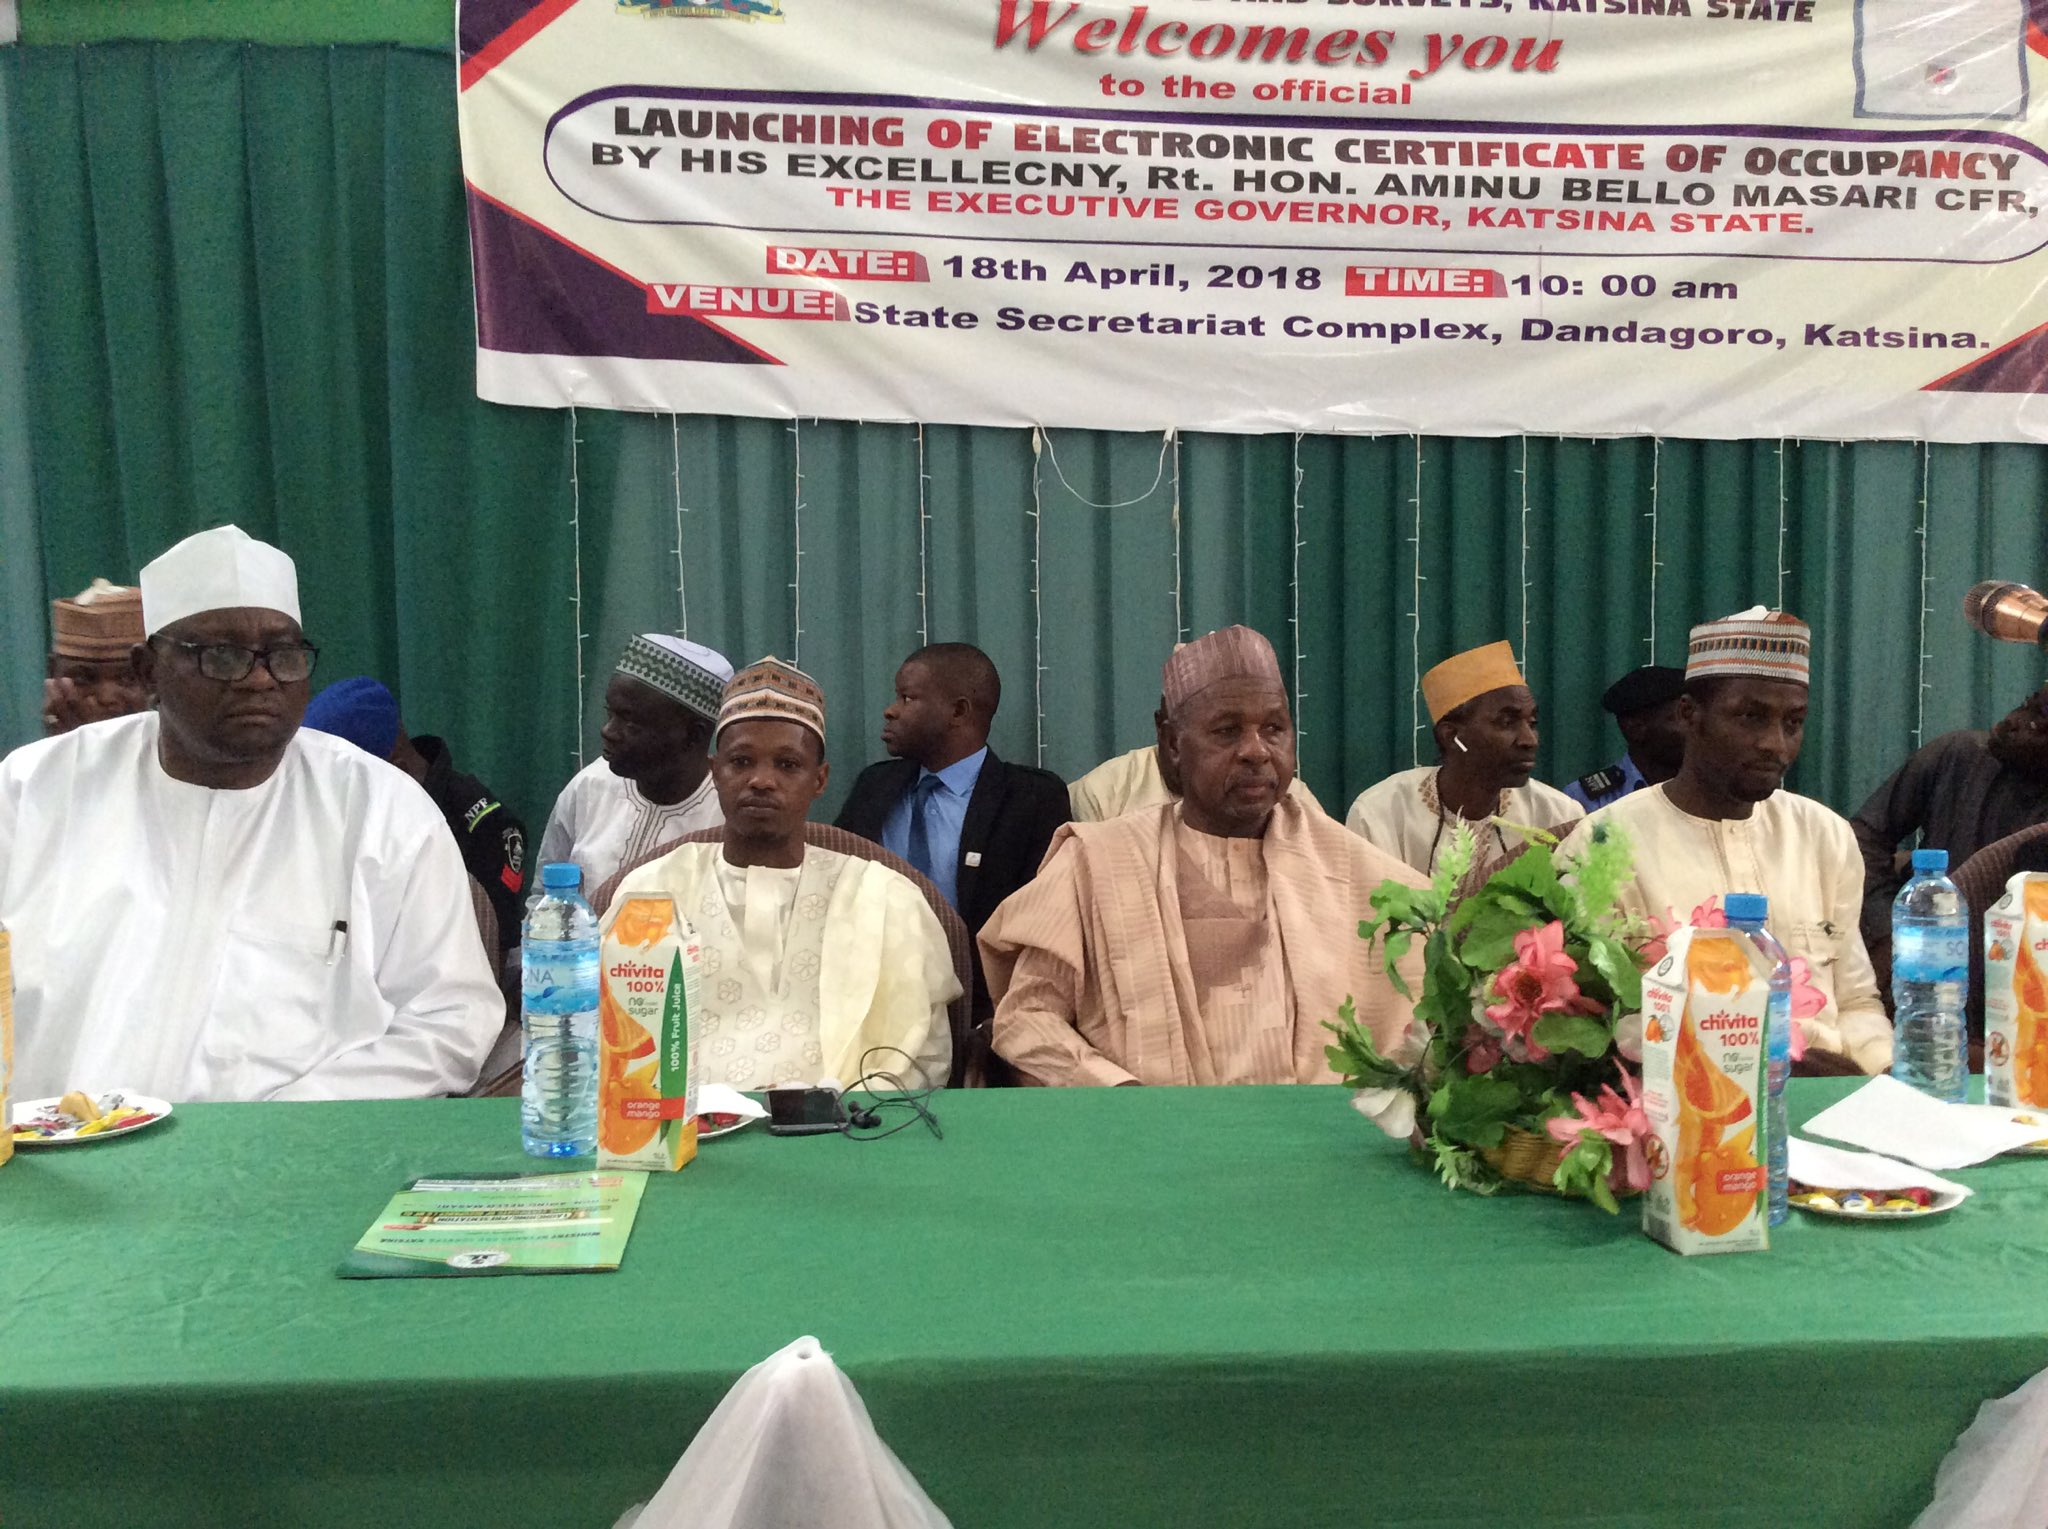 Katsina state government introduces electronic Certificate of Occupancy